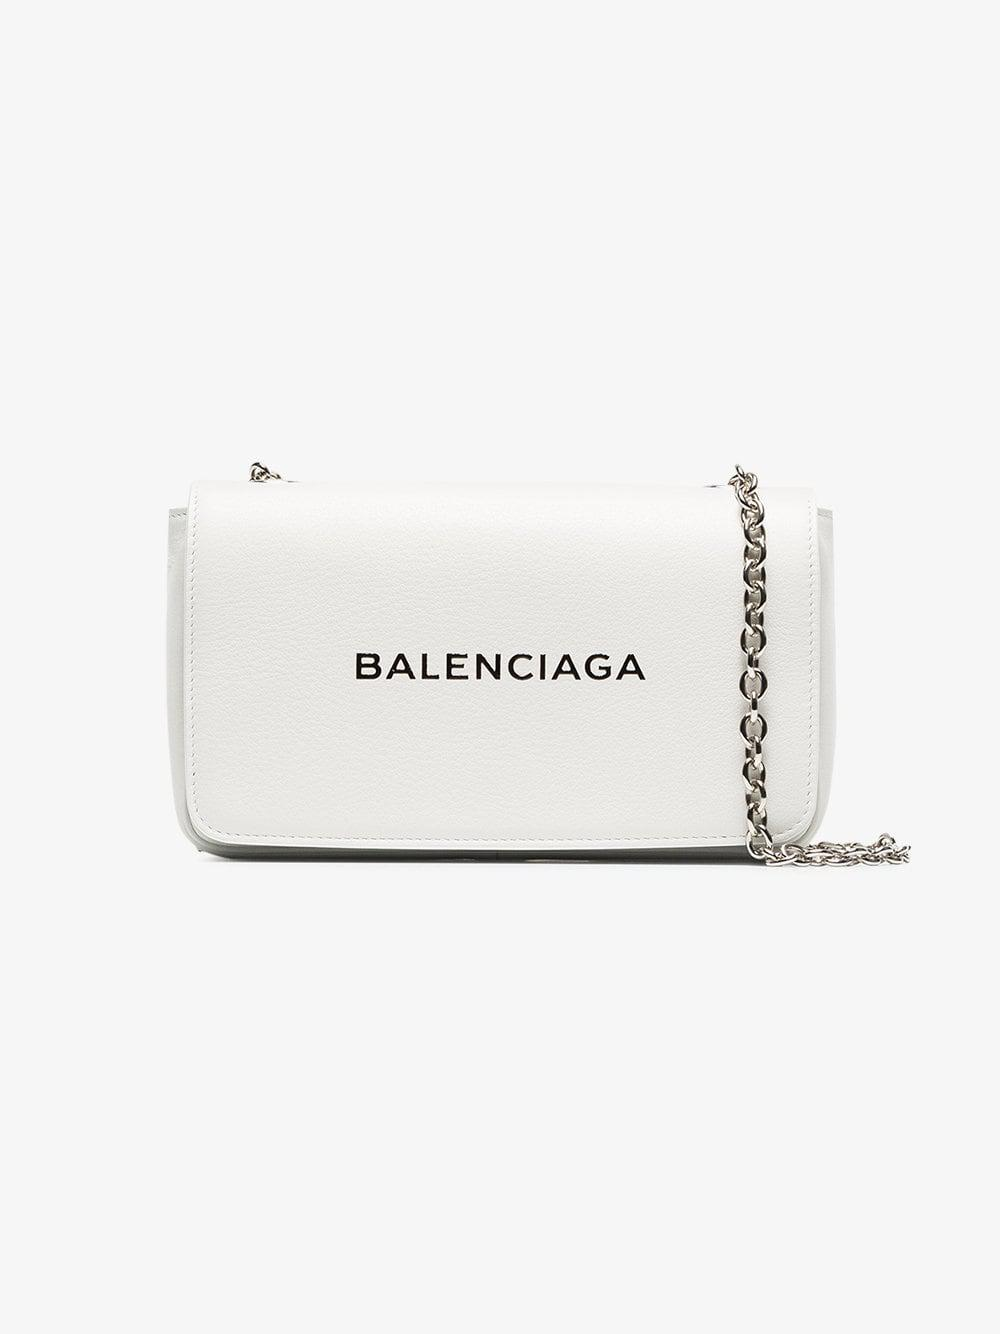 Balenciaga - White Everyday Small Leather Clutch On Chain - Lyst. View  fullscreen 654cdea0f02d4